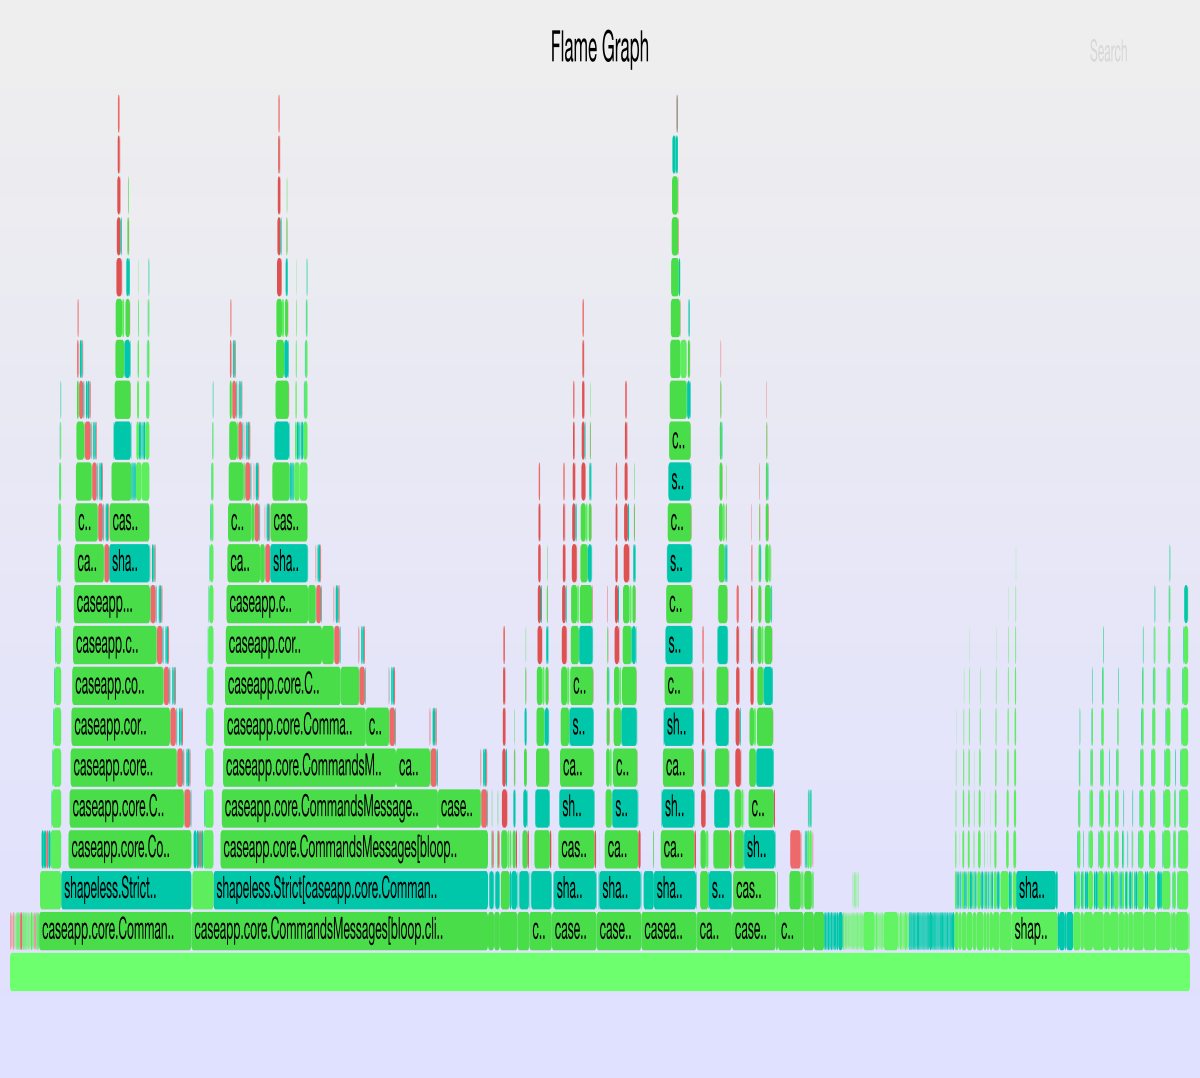 Flamegraph after caching + case-app changes